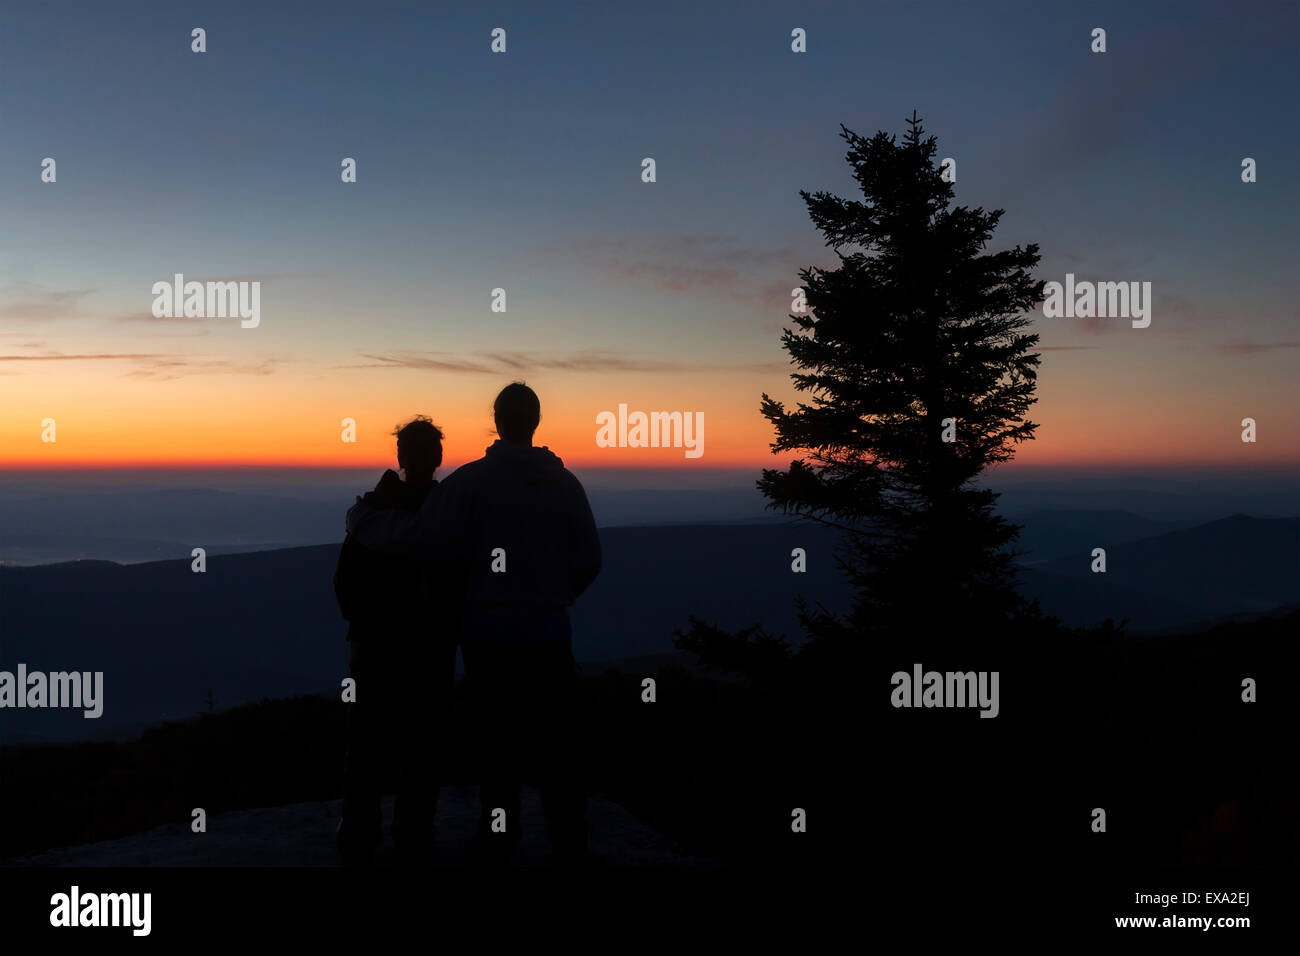 The Silhouettes of two backpackers, dwarfed by a wind swept Red Spruce, look eastward over the Allegheny Plateau - Stock Image